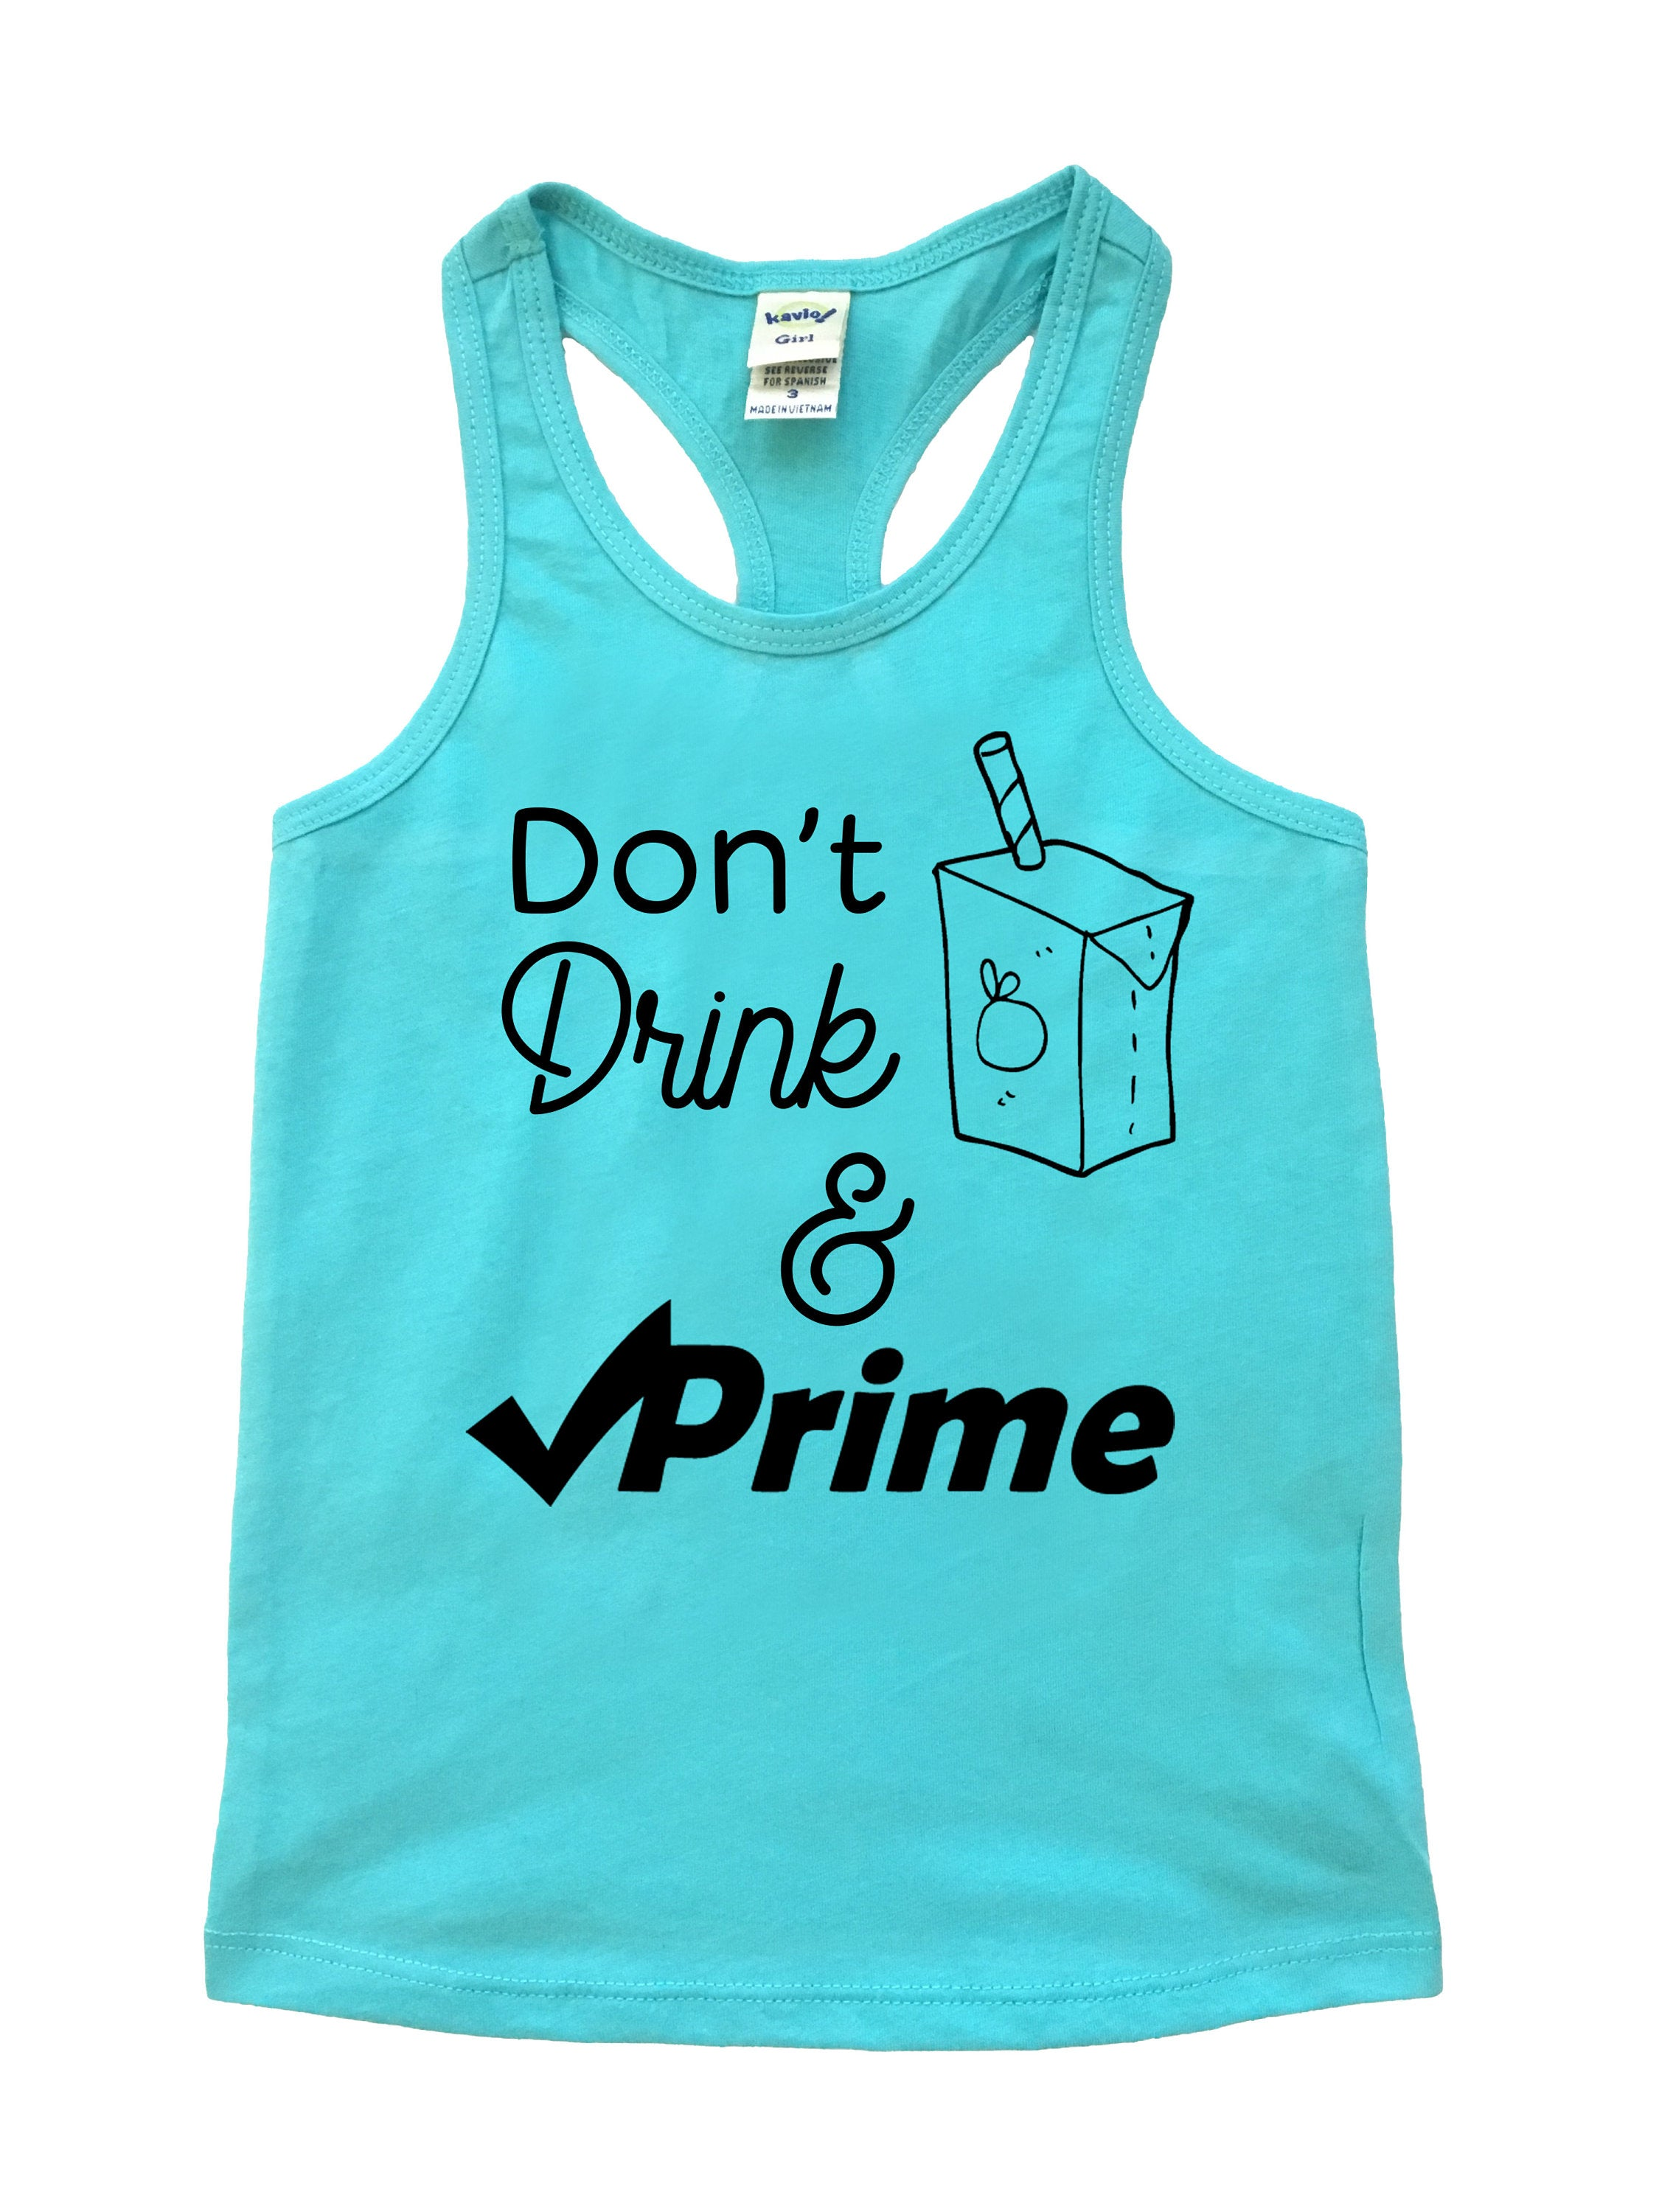 Don't Drink and Prime Tank Top - Funny Trendy Kids Girls Graphic Tee - Baby Toddler Blue Black Shopping Addiction T-Shirt - Spring Summer